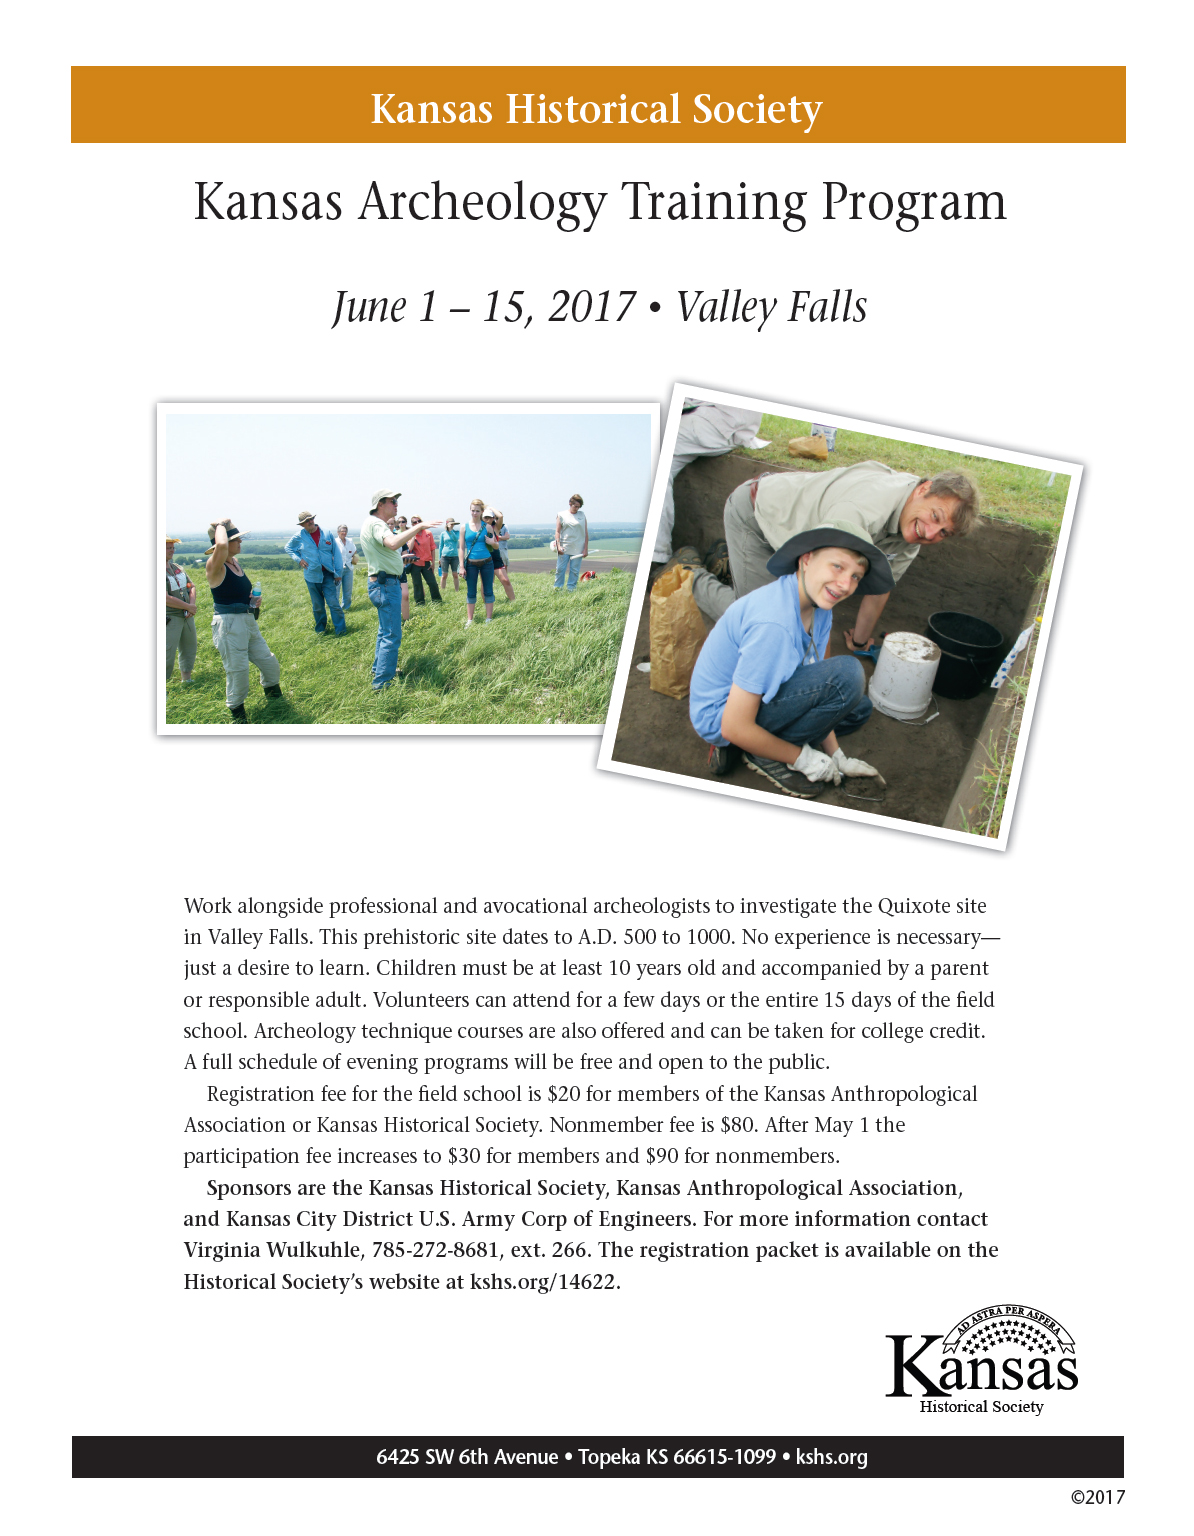 2017 Kansas Archeology Training Program